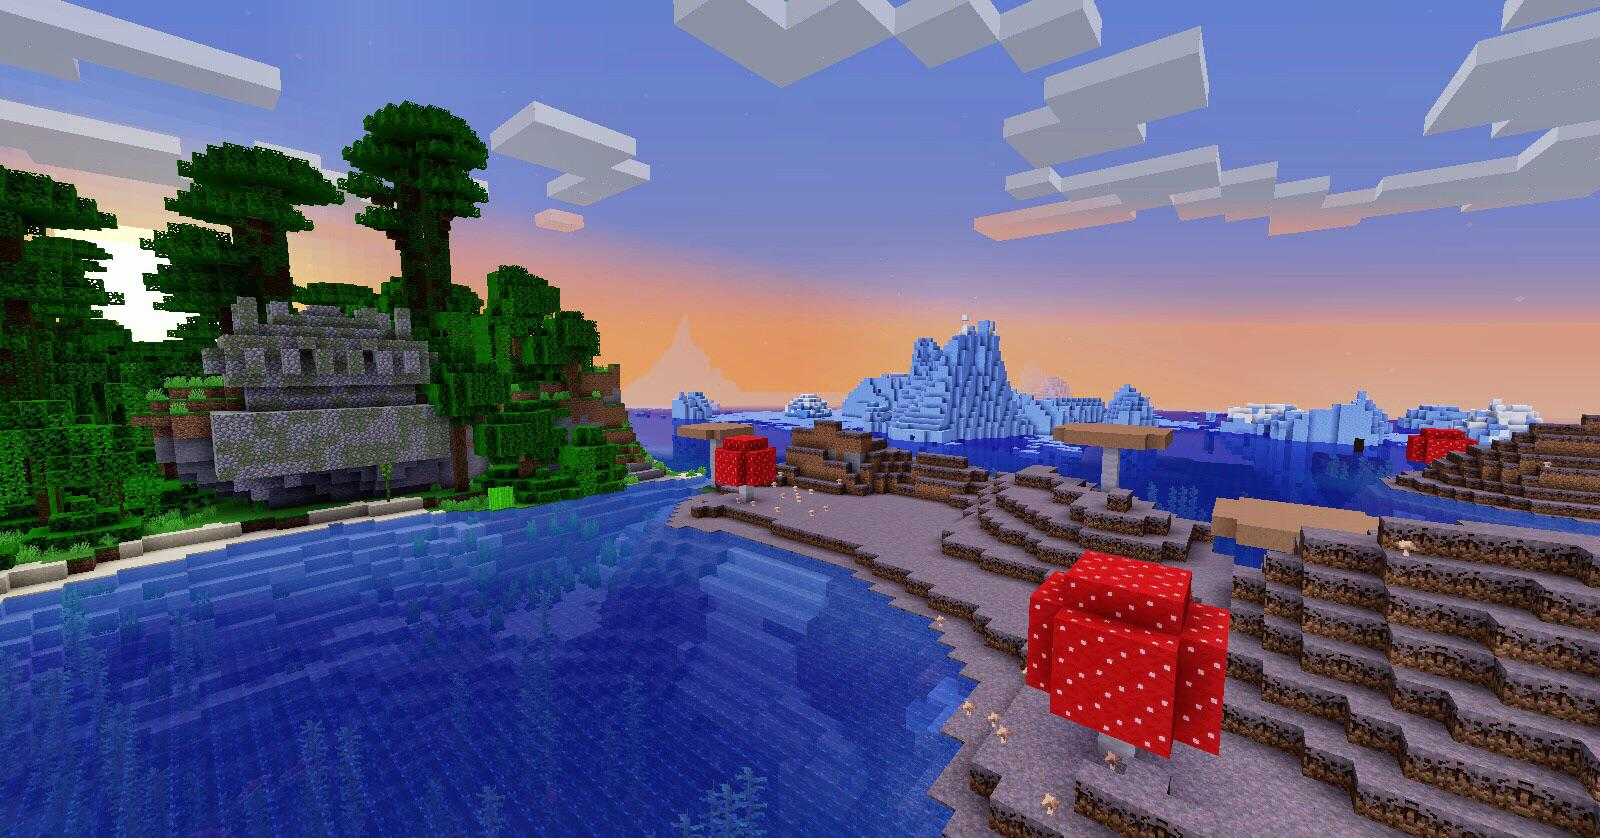 Suspended Jungle Temple by Mushroom, Glacier & Shipwreck! MINECRAFT SEED -5122472569260530564